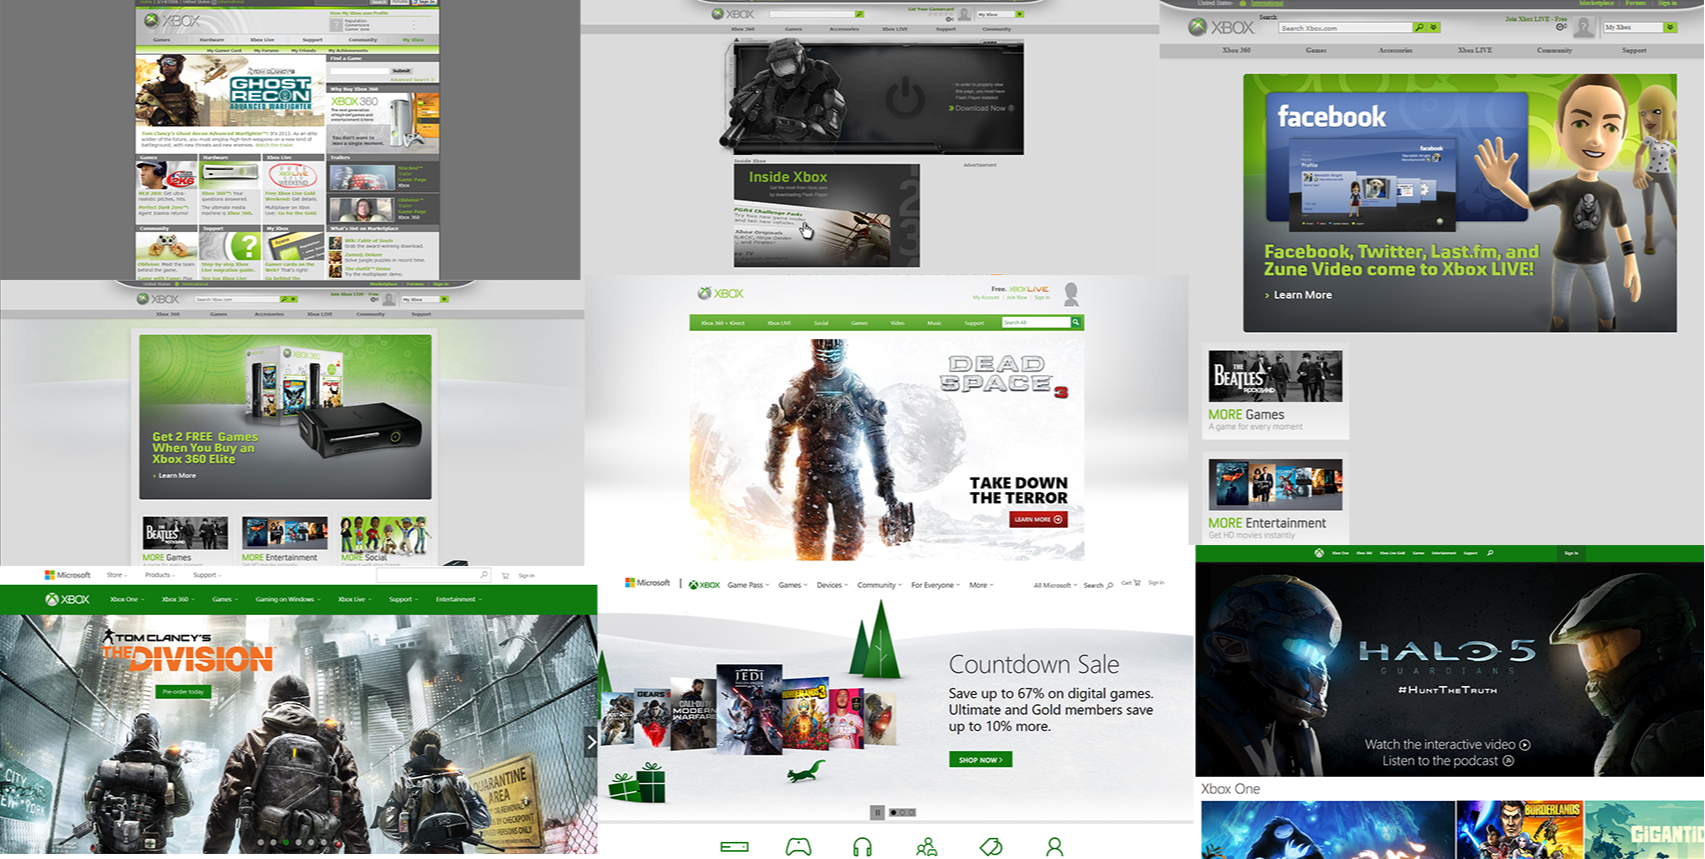 /how-xbox-changed-their-homepage-every-year-for-the-past-18-years-1c1634z9 feature image